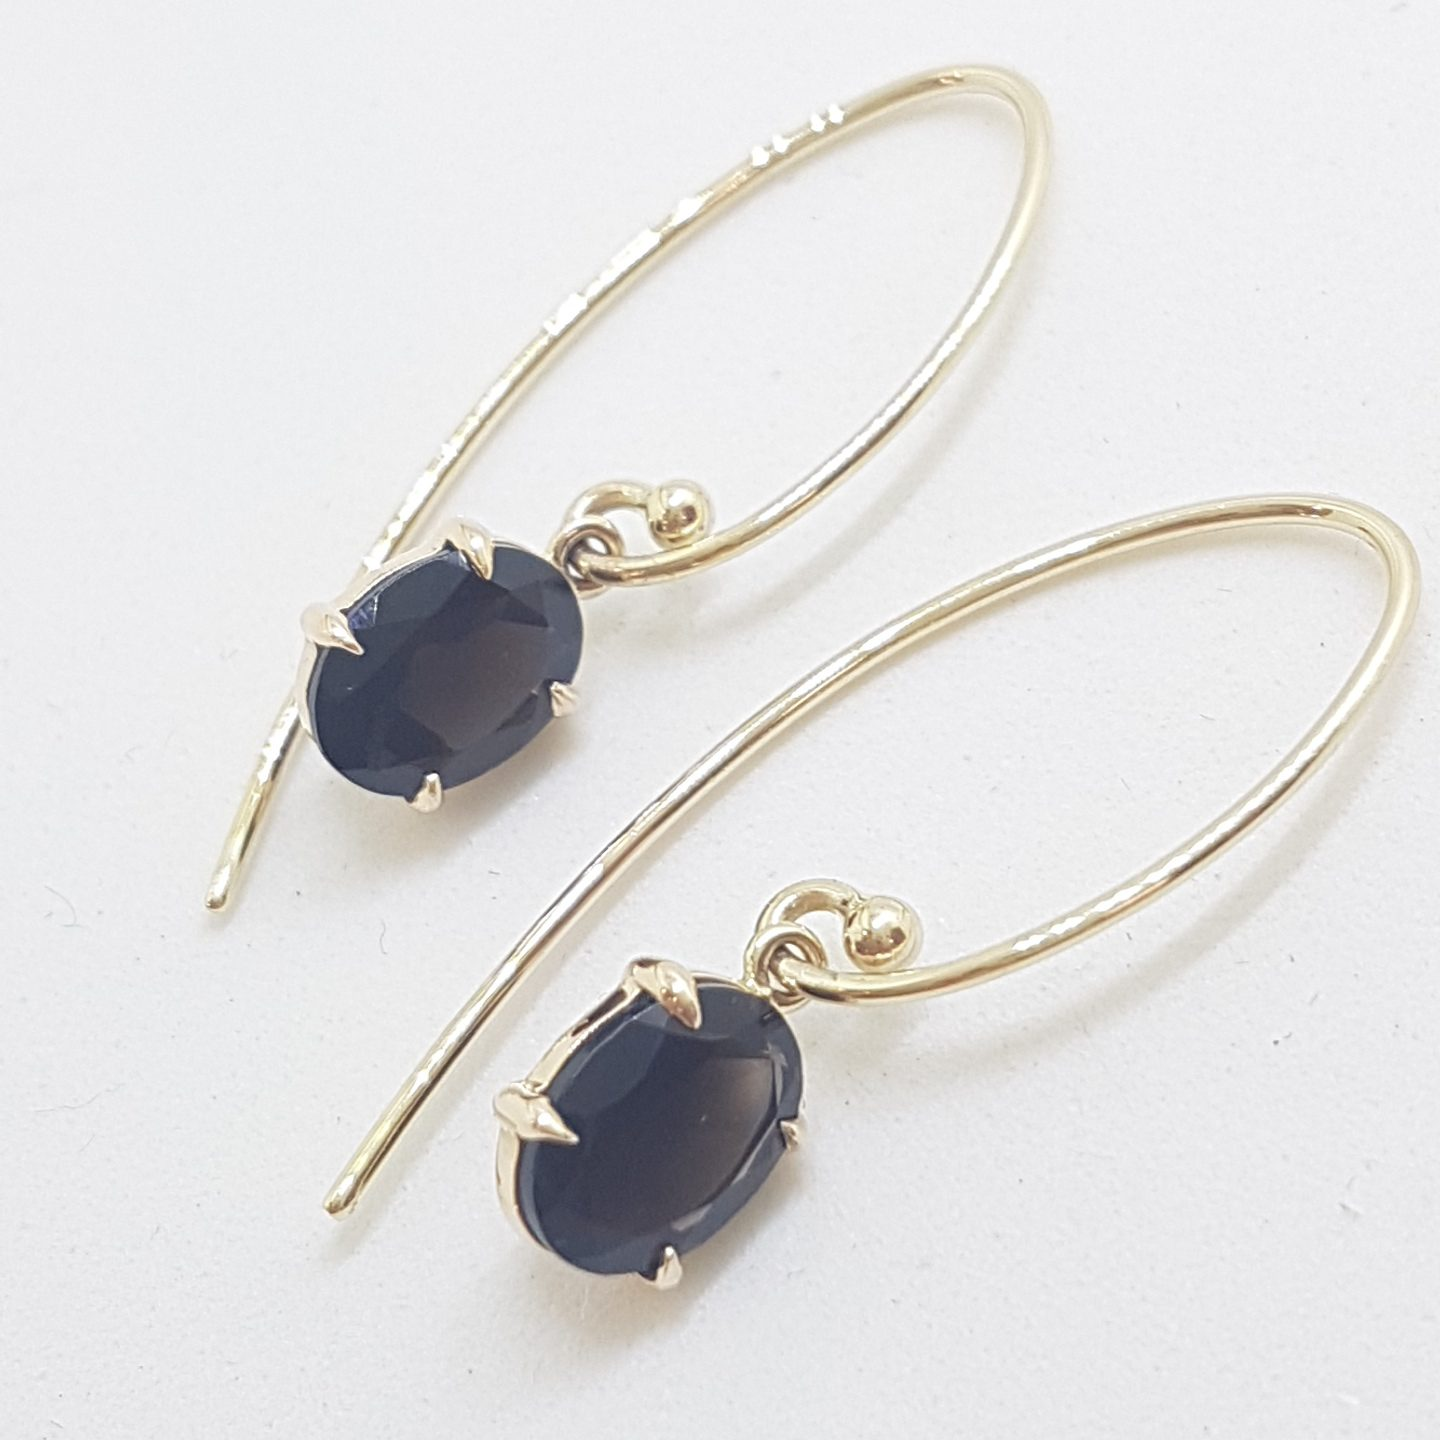 9ct Yellow Gold Oval Claw Set Long Smokey Quartz Drop Earrings